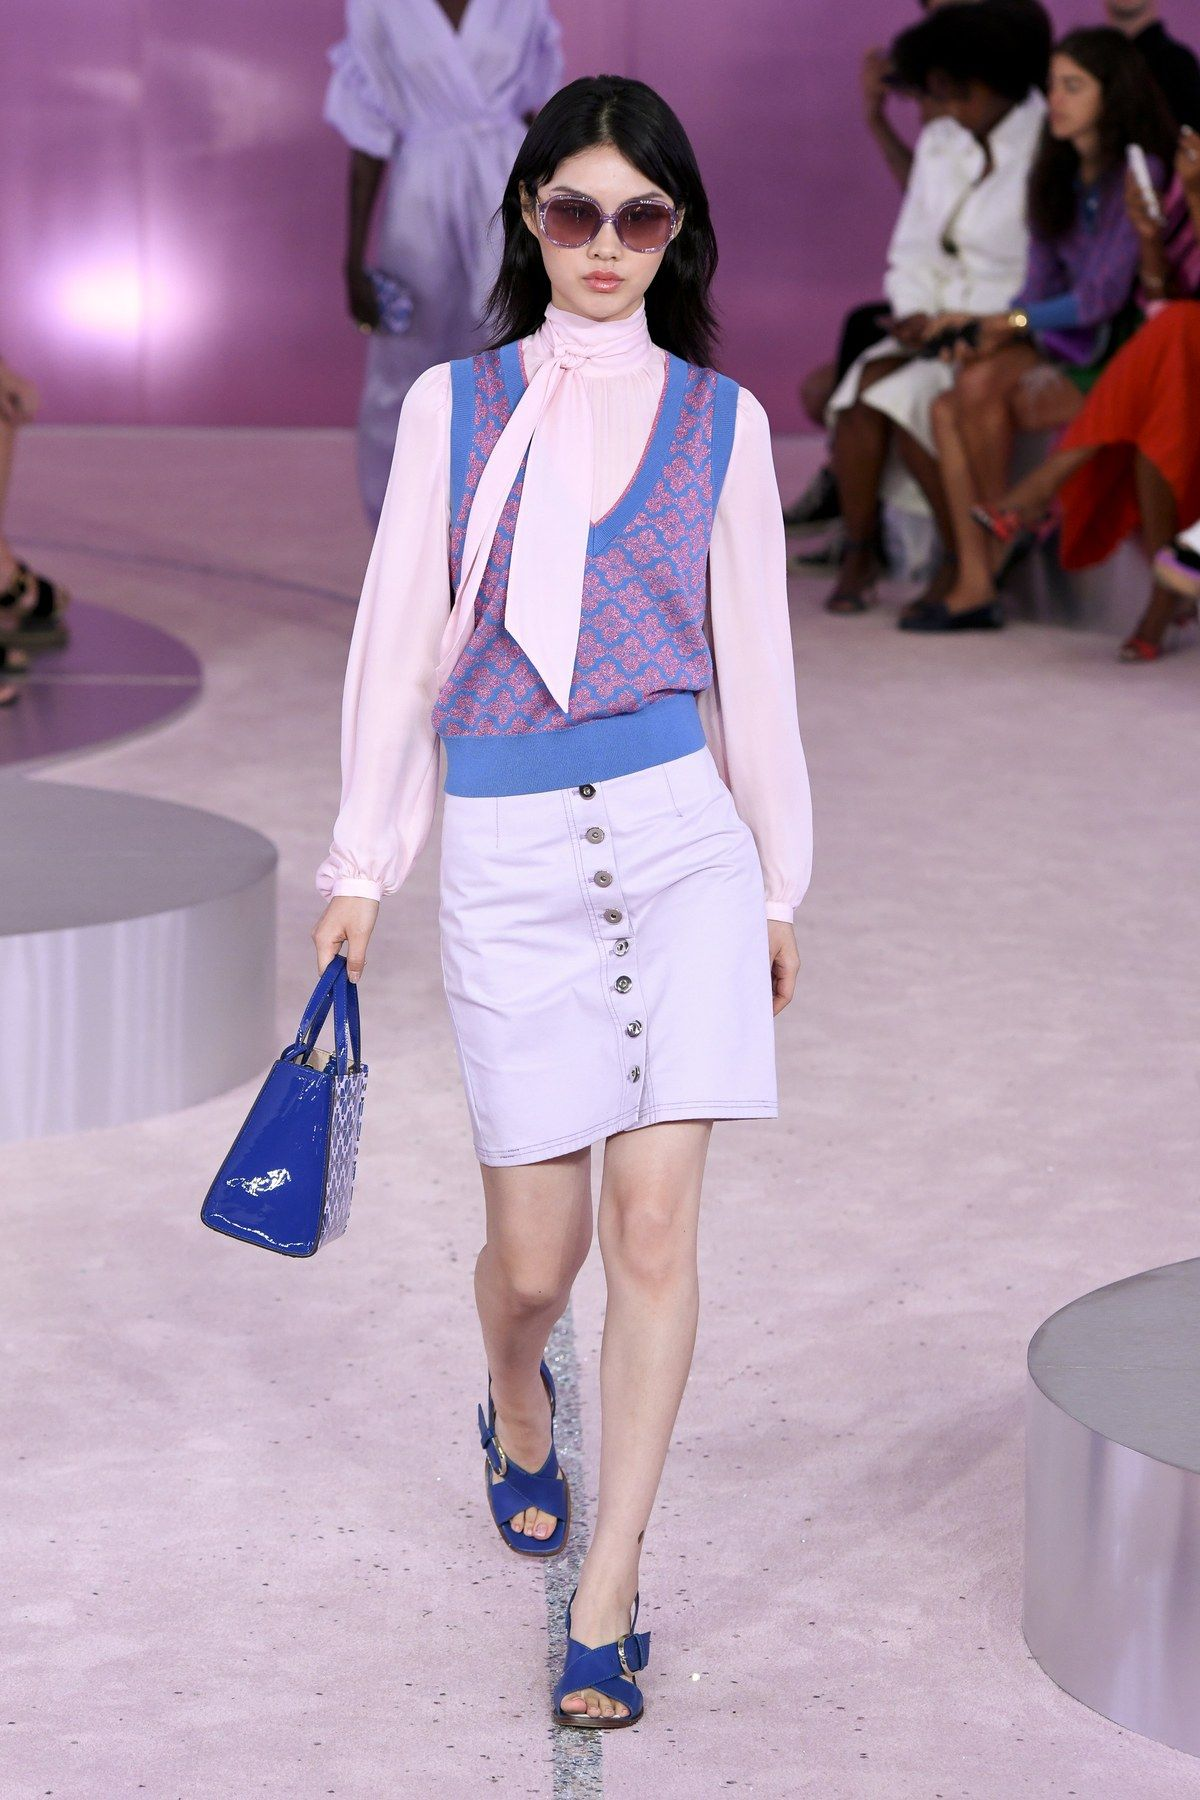 d8630244cd Kate Spade New York Spring 2019 Ready-to-Wear Fashion Show ...